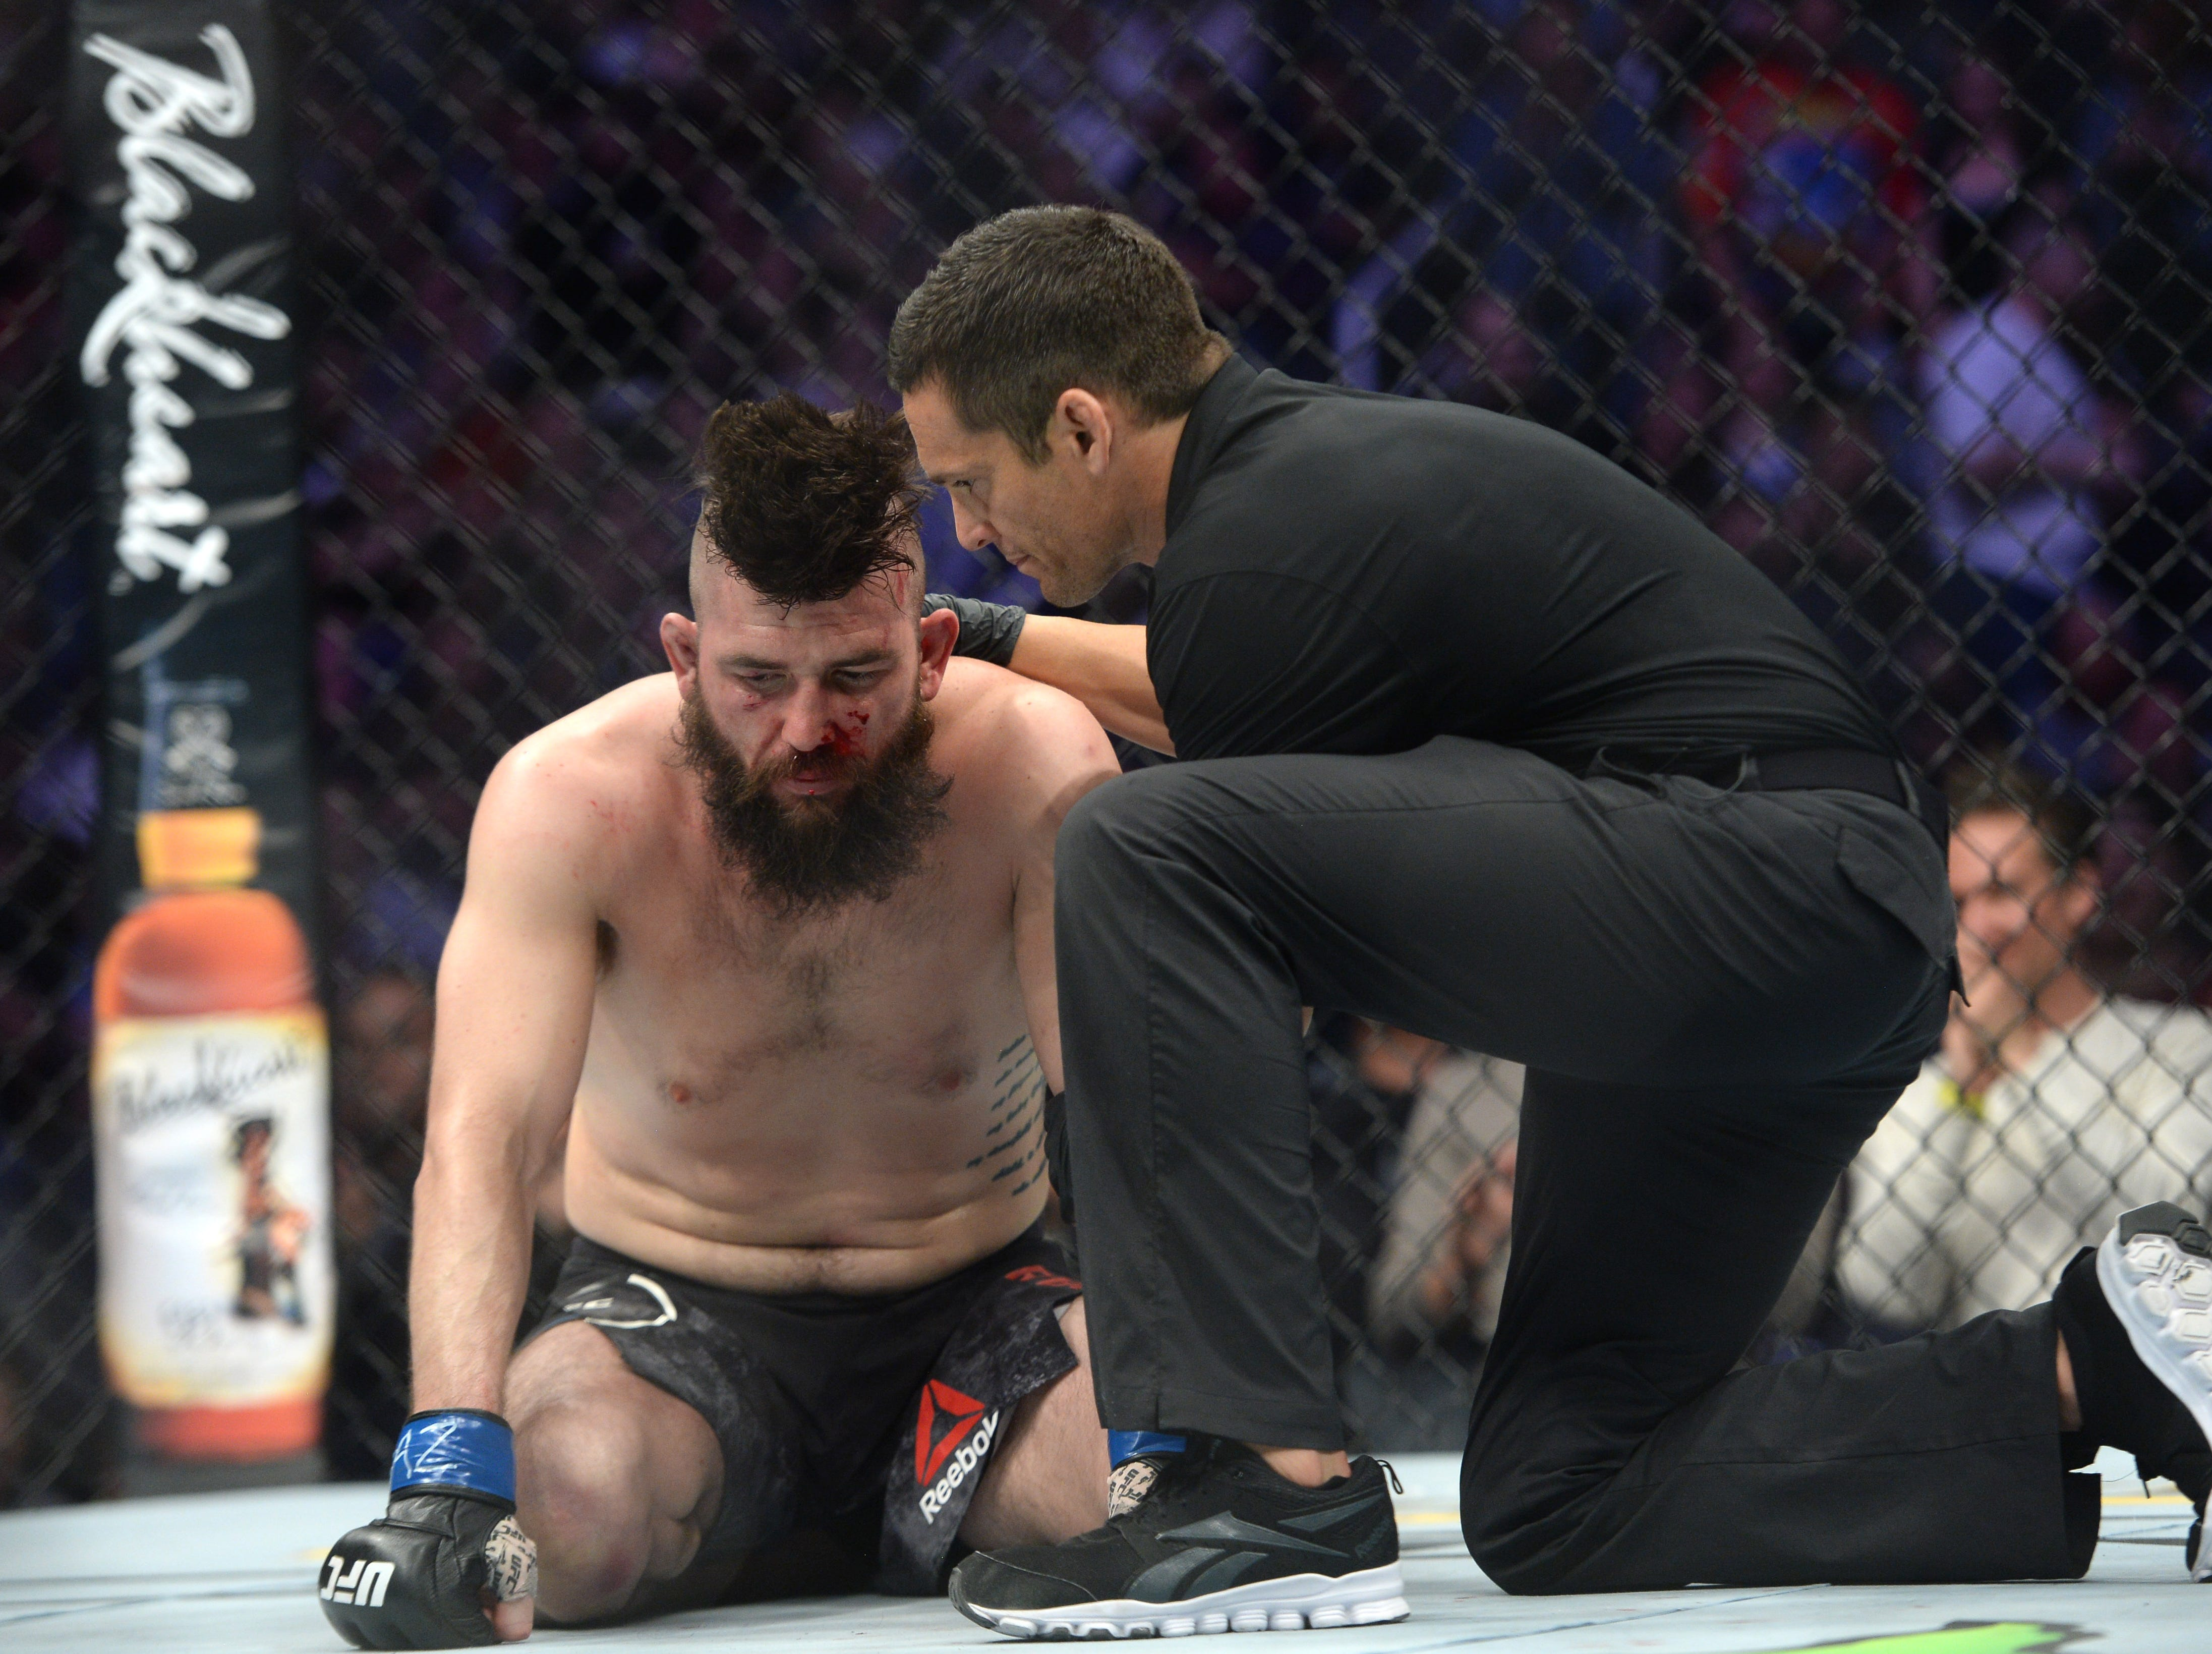 Feb 17, 2019; Phoenix, AZ, USA; Bryan Barberena (blue) is tended to after his welterweight bout against Vicente Luque  (not pictured) during UFC Fight Night at Talking Stick Resort Arena. Luque won via third round TKO. Mandatory Credit: Joe Camporeale-USA TODAY Sports